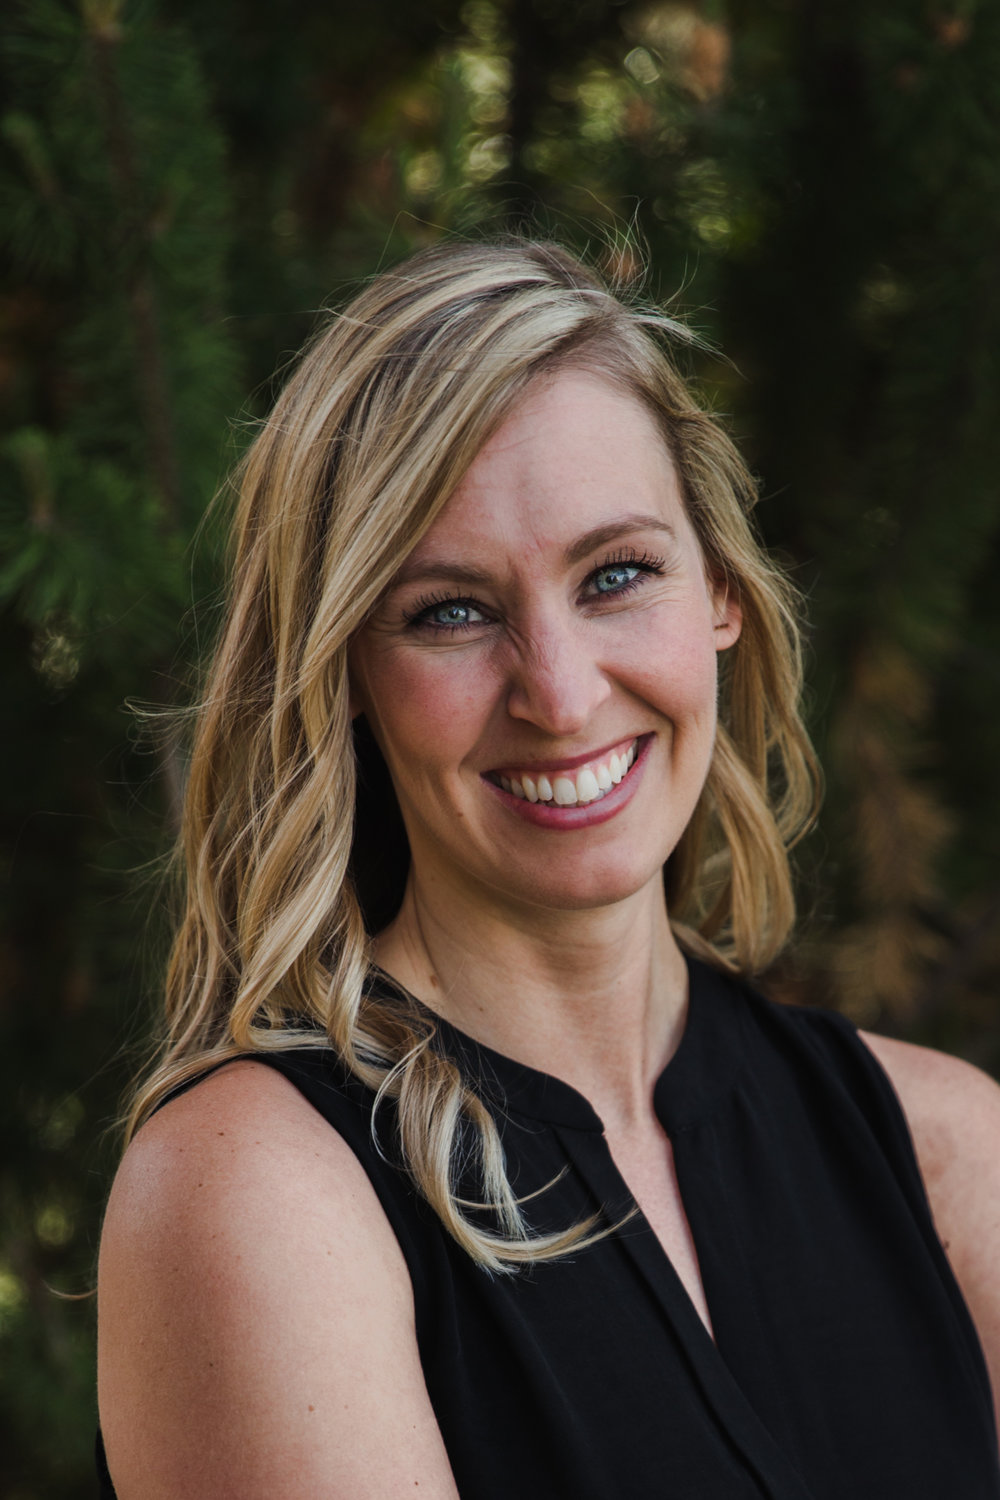 Anne Koupal- OR #17225   Licensed Massage Therapist, Certified Chiropractic Assistant  Sports, Deep Tissue, Swedish, Myofascial Release, Neuromuscular Therapies, Injury Treatment, Cupping Therapy.   PREFERRED PROVIDER - REGENCE BLUE CROSS/BLUE SHEILD